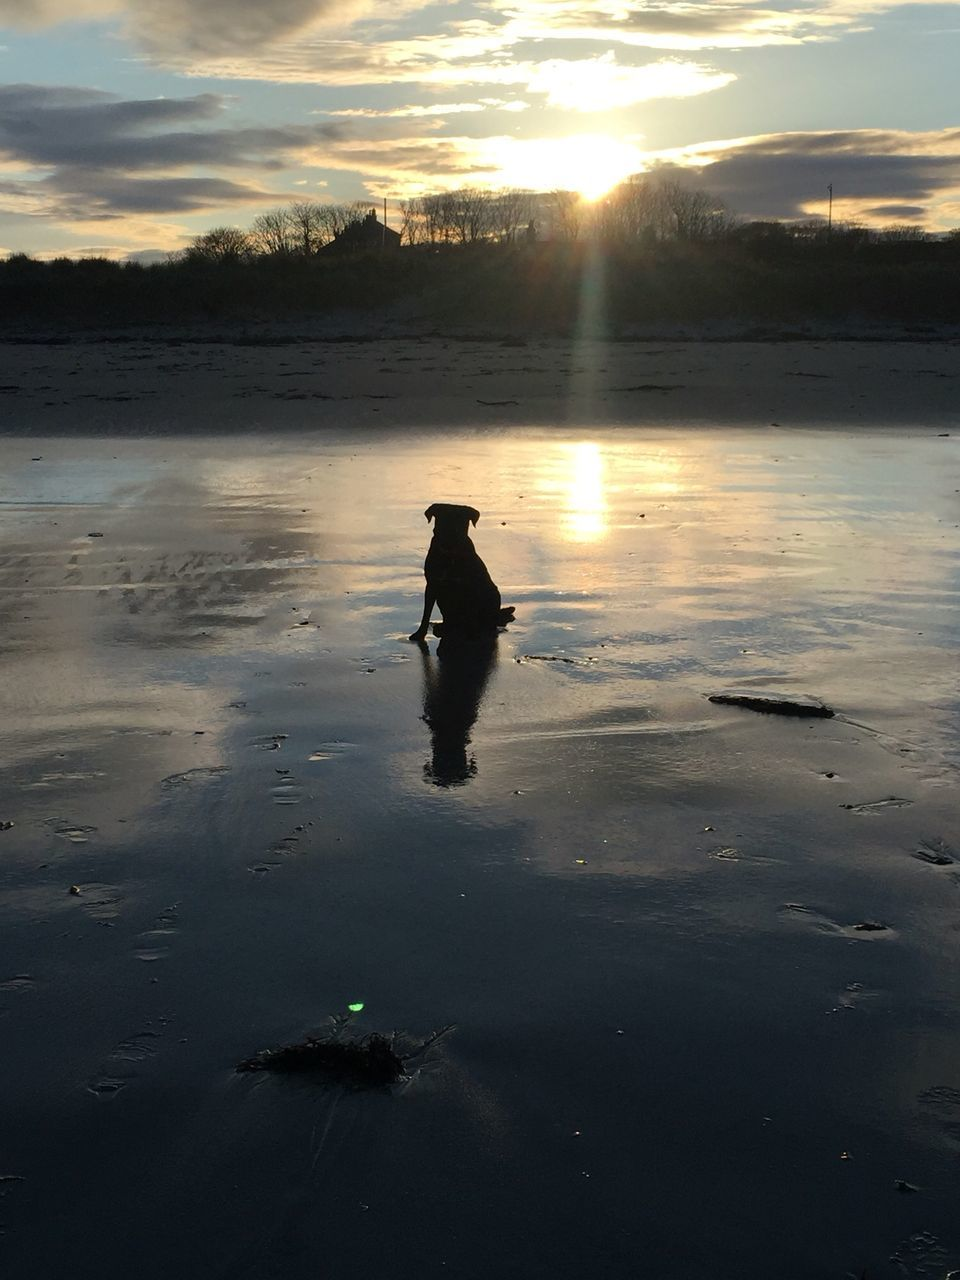 sunset, reflection, nature, silhouette, one animal, water, animal themes, lake, sunlight, outdoors, beauty in nature, sky, cloud - sky, animals in the wild, no people, scenics, bird, day, mammal